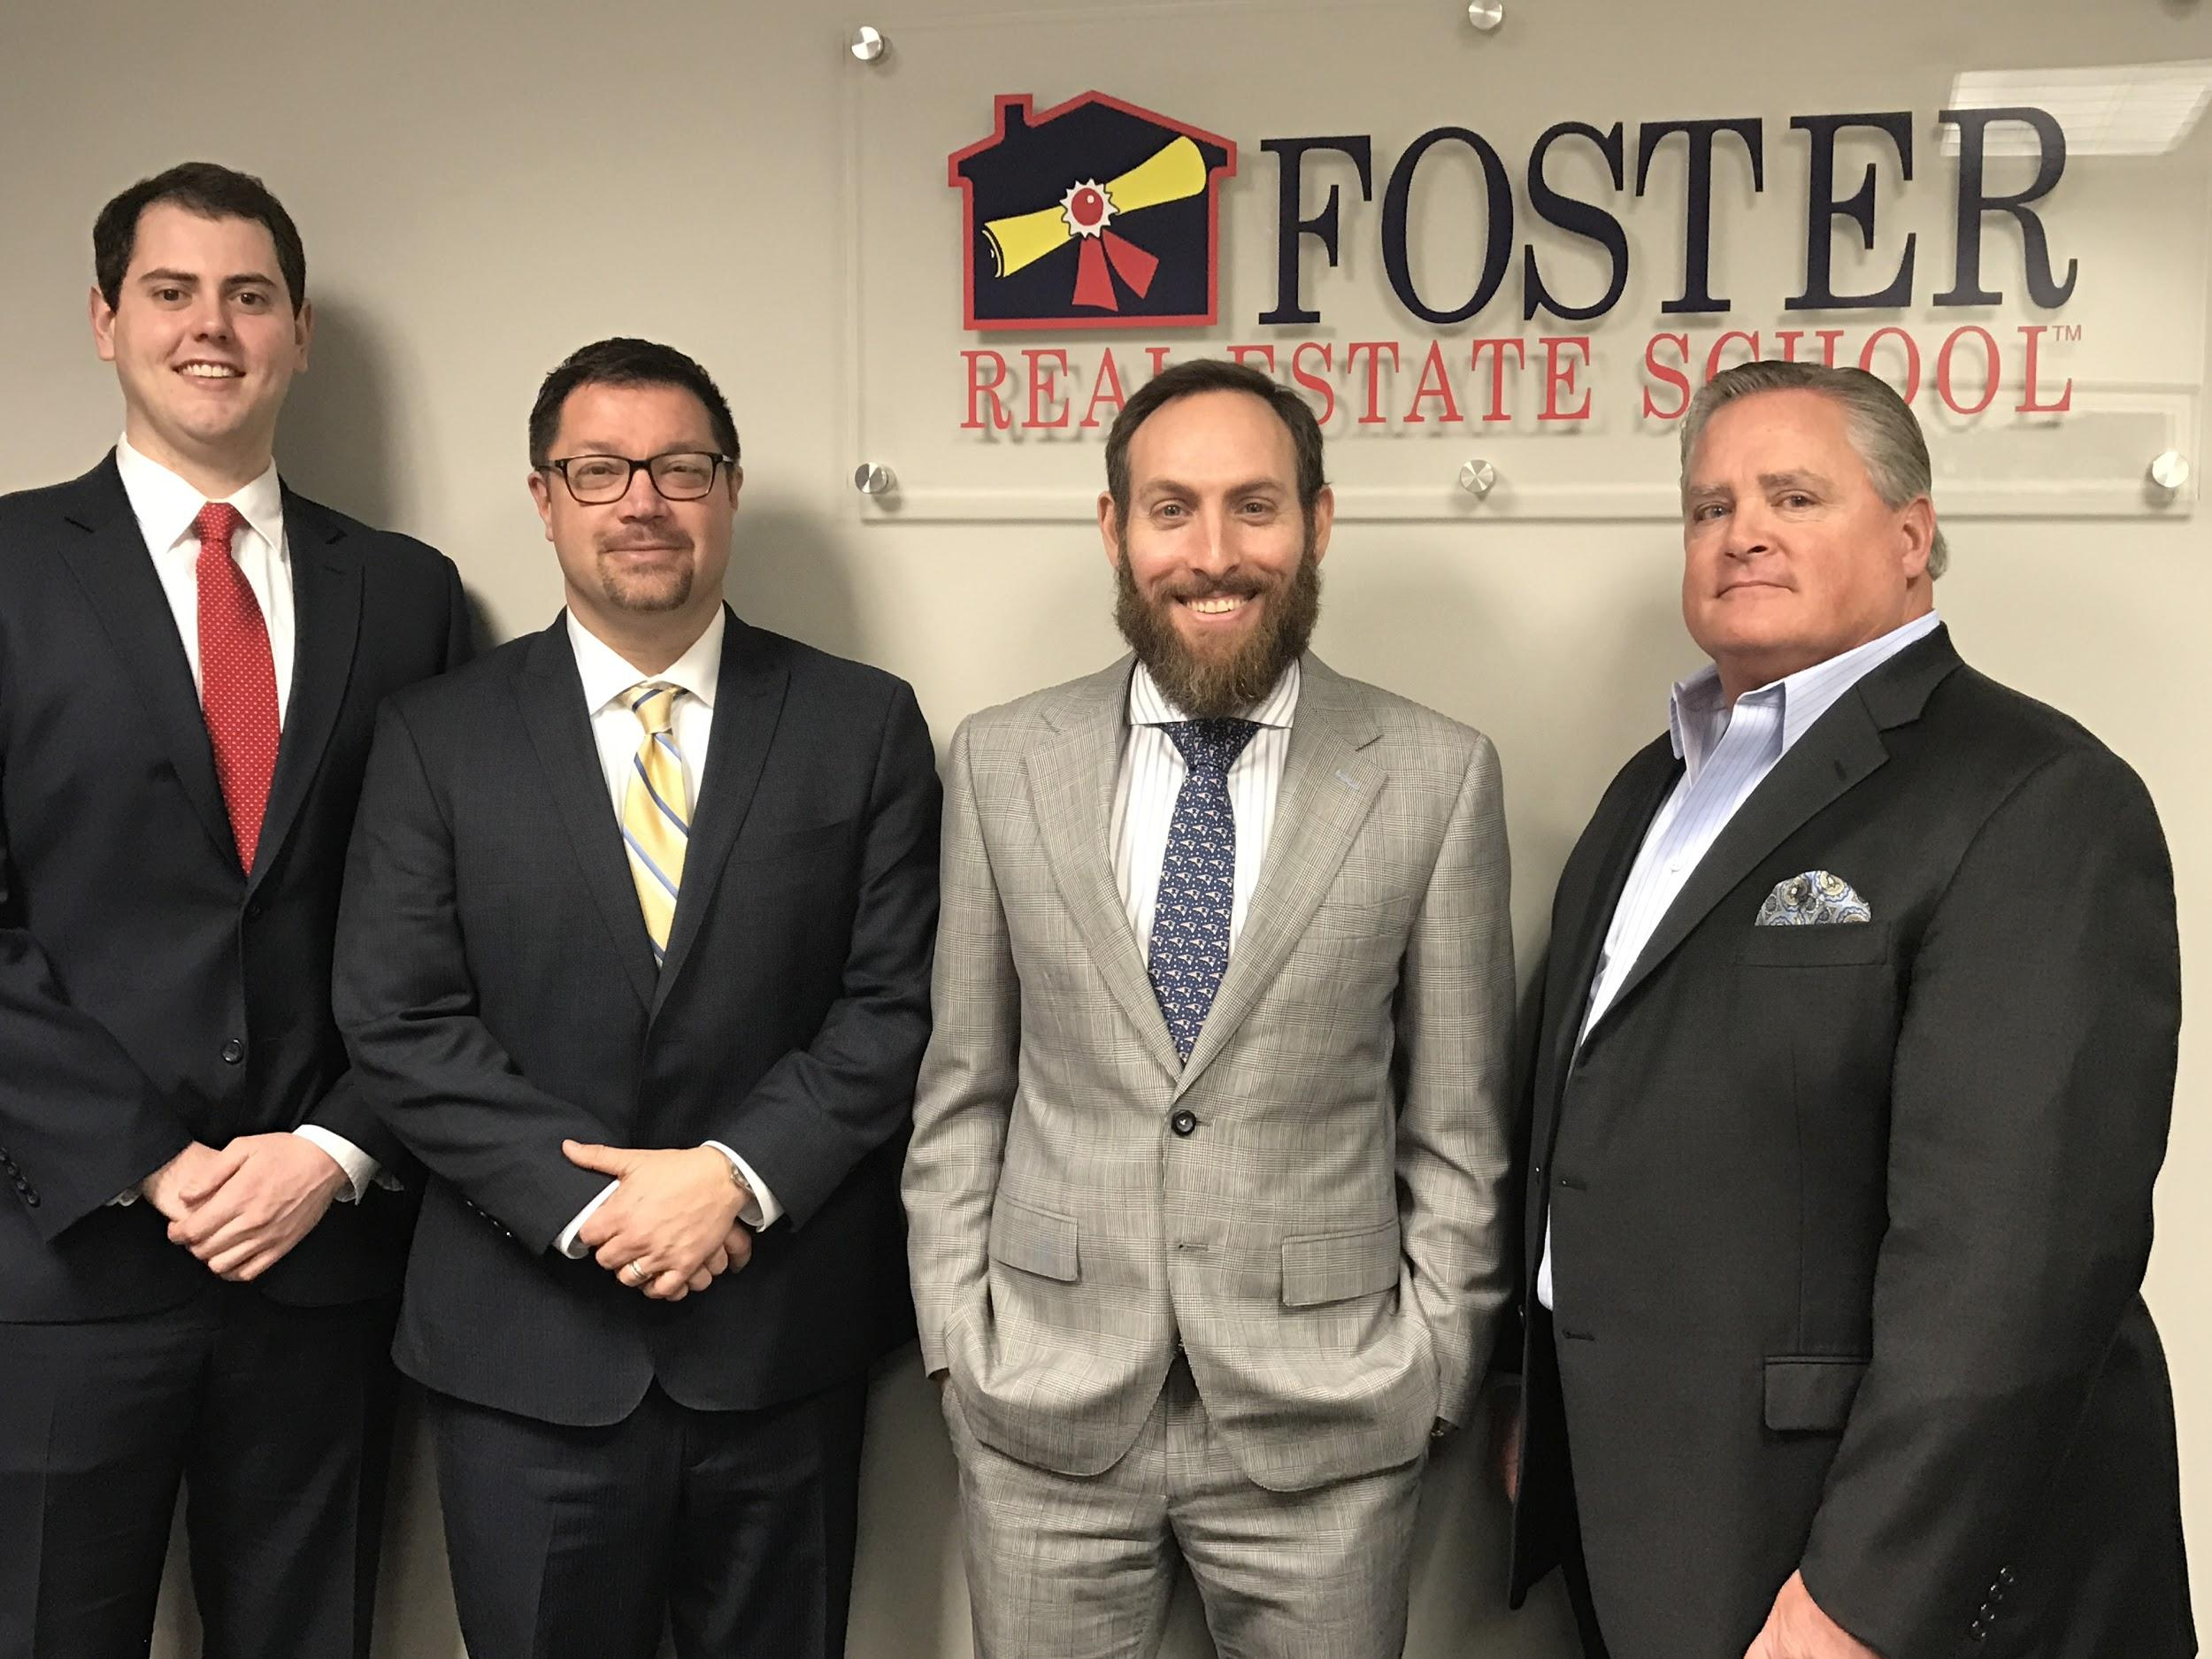 Rental Beast and Long & Foster Partner in Philadelphia, Delaware and New Jersey